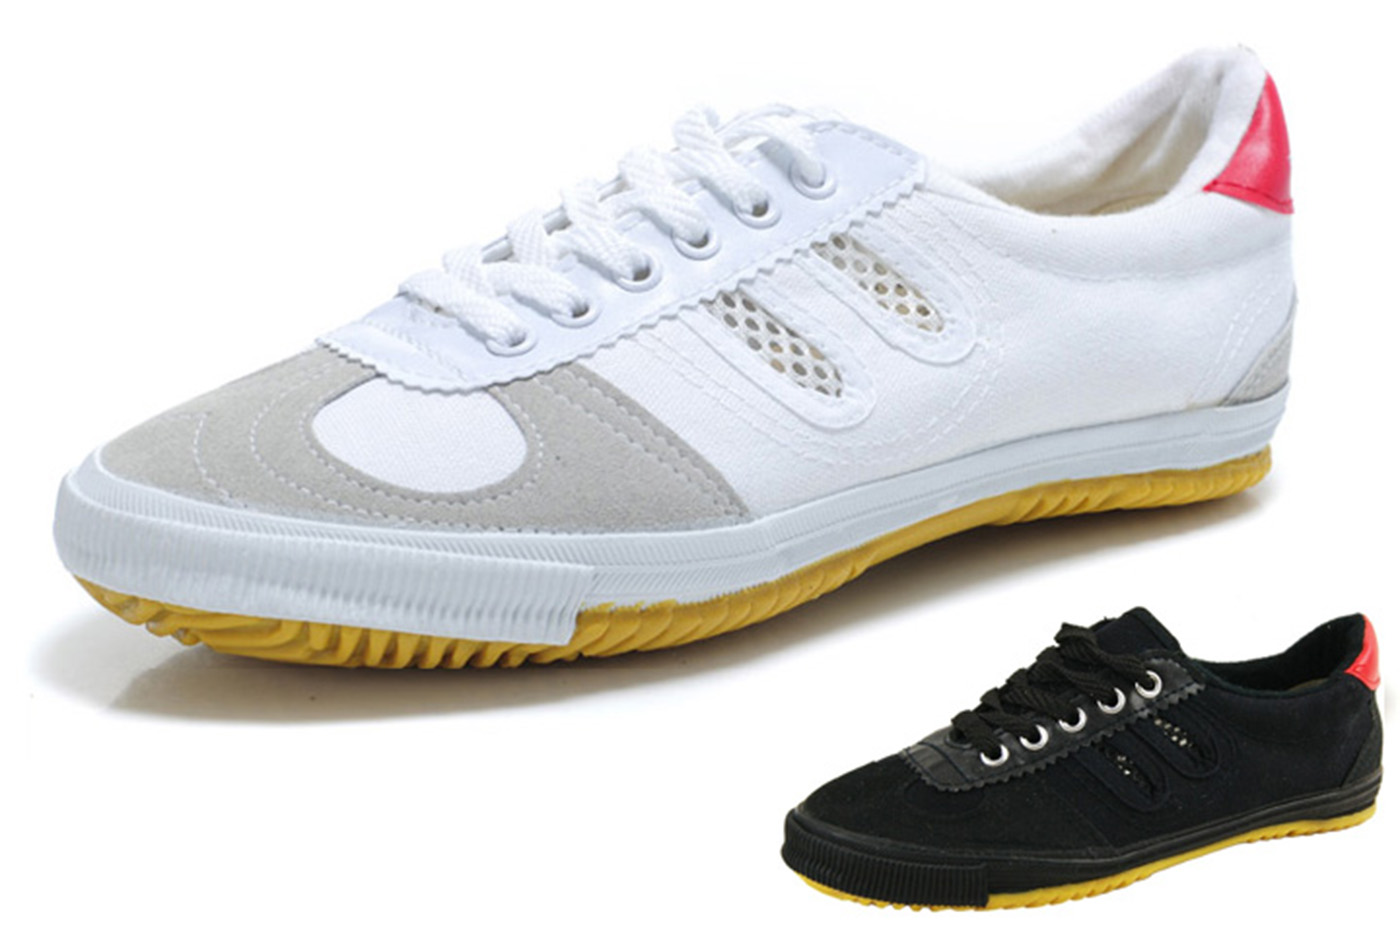 Chaussures Wushu «Double Star» 2